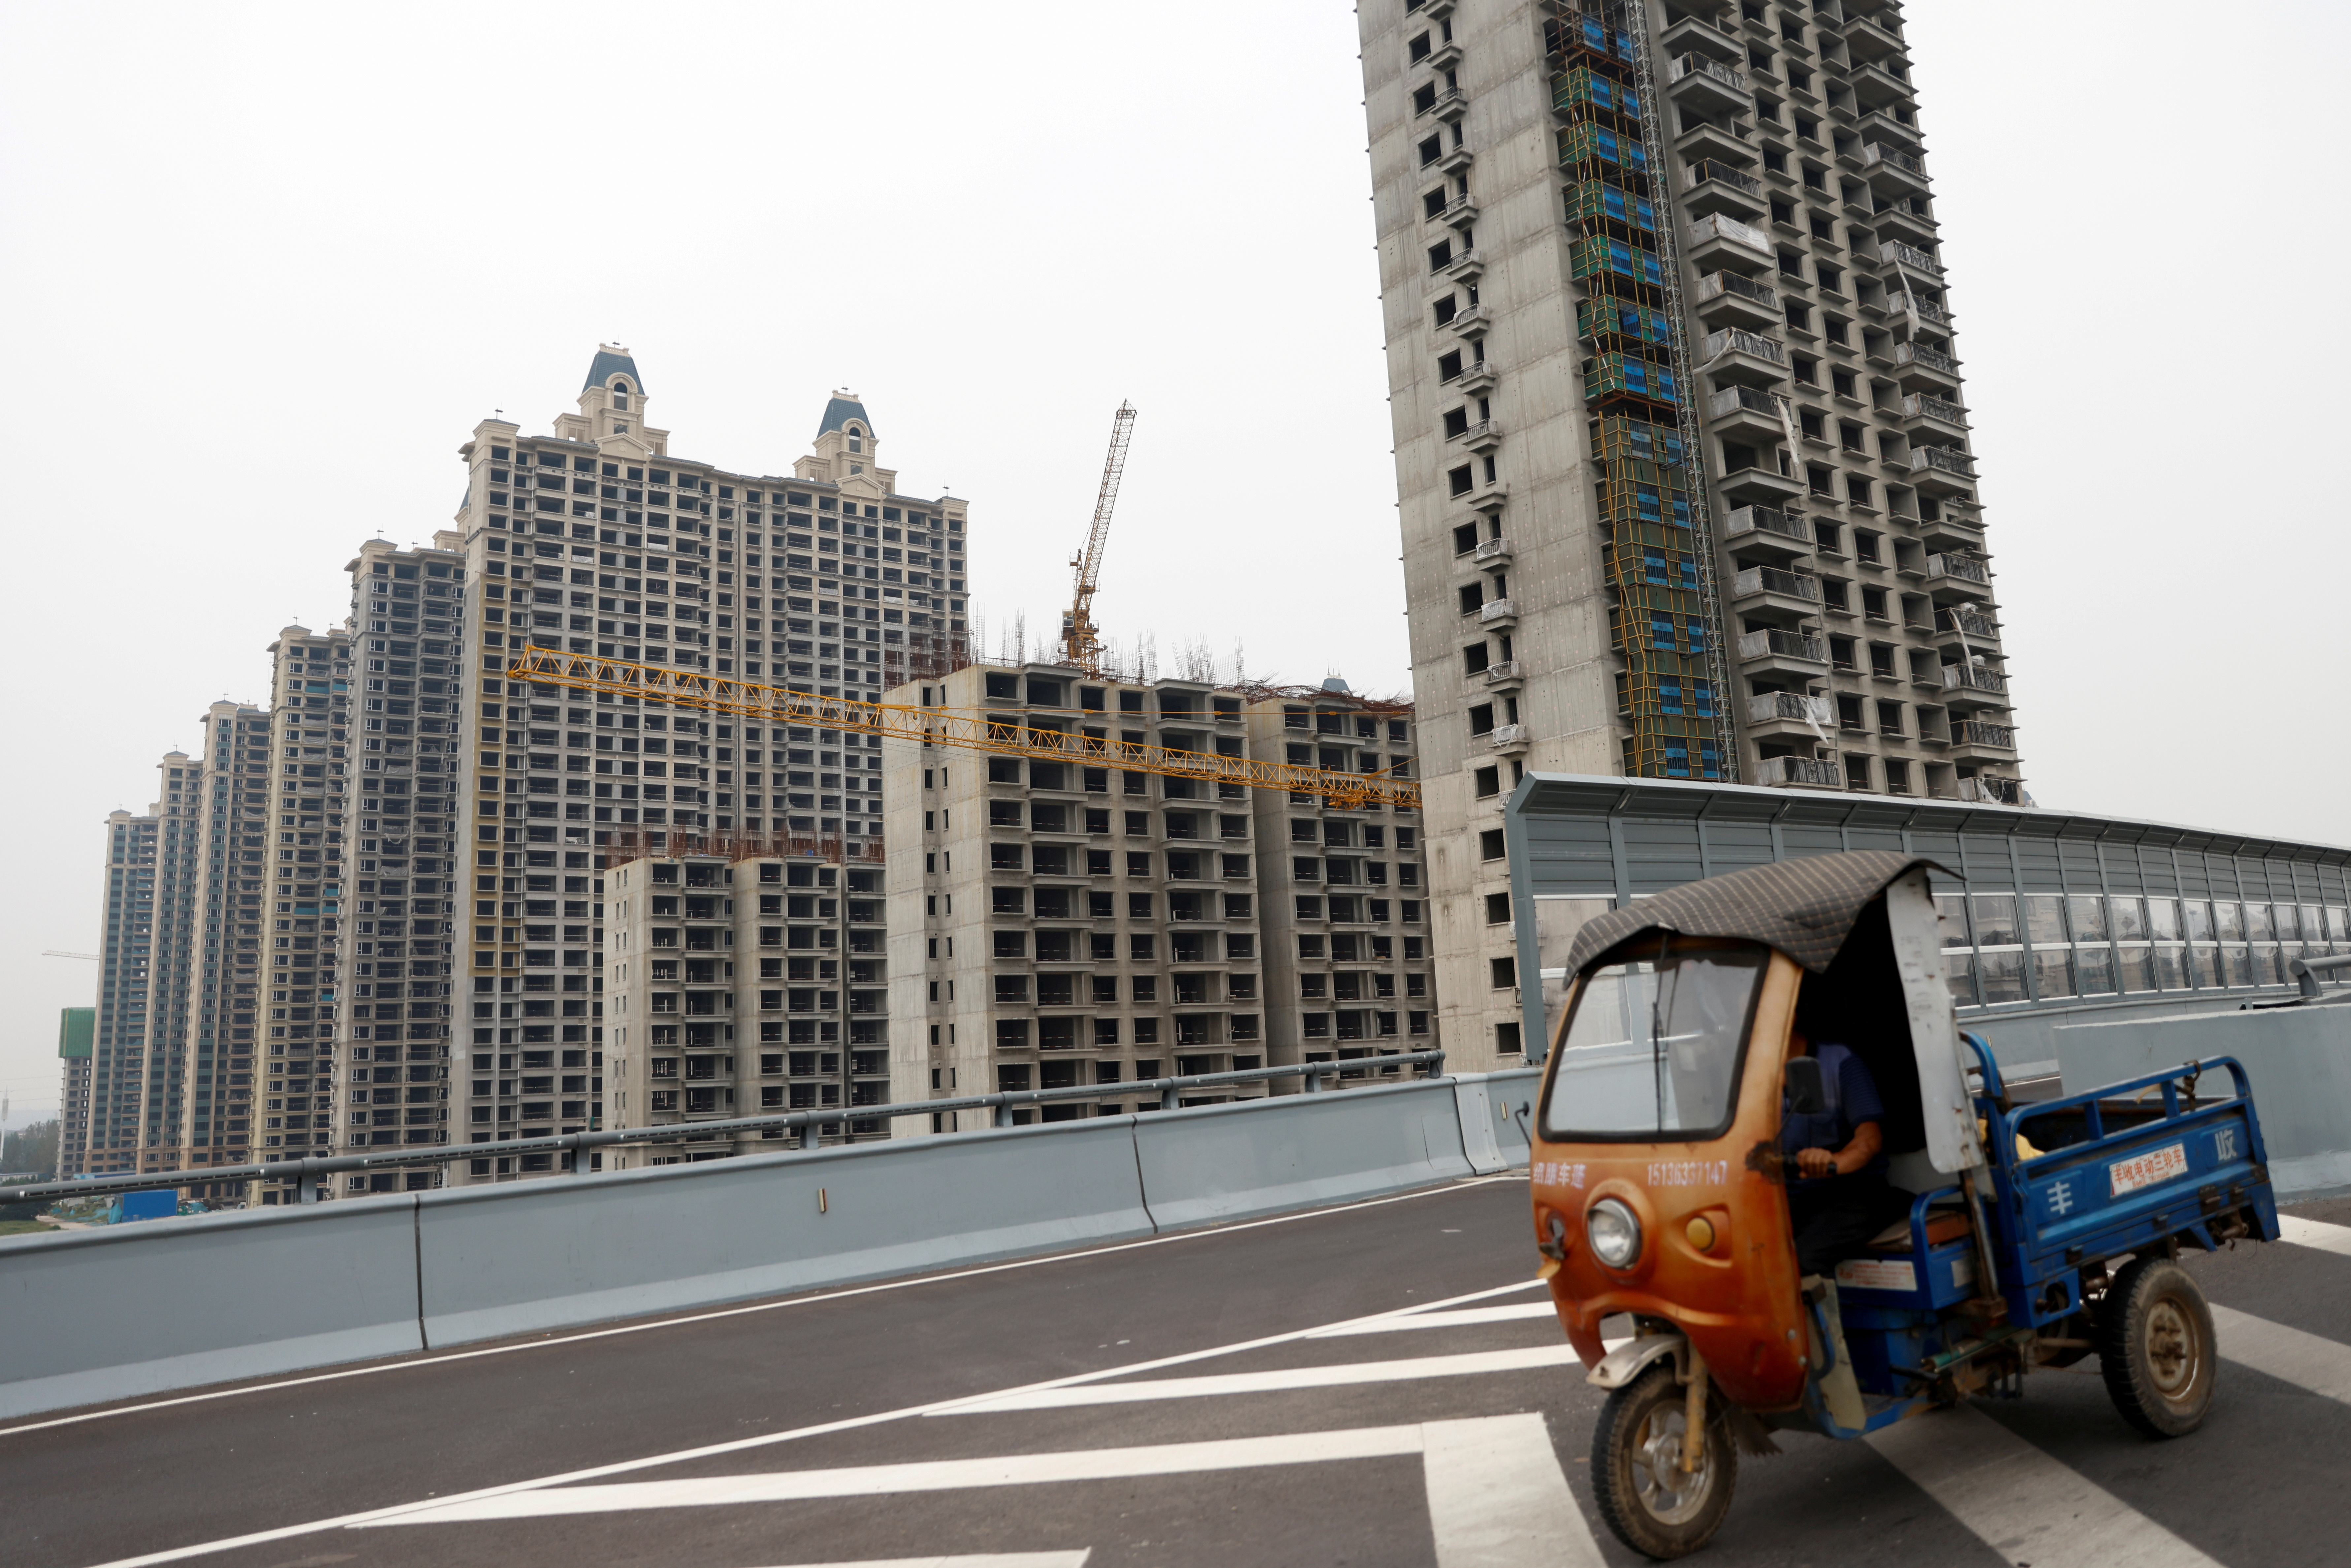 A vehicle drives past unfinished residential buildings at Evergrande Oasis, a housing complex developed by Evergrande Group, in Luoyang, China September 16, 2021. REUTERS/Carlos Garcia Rawlins/File Photo